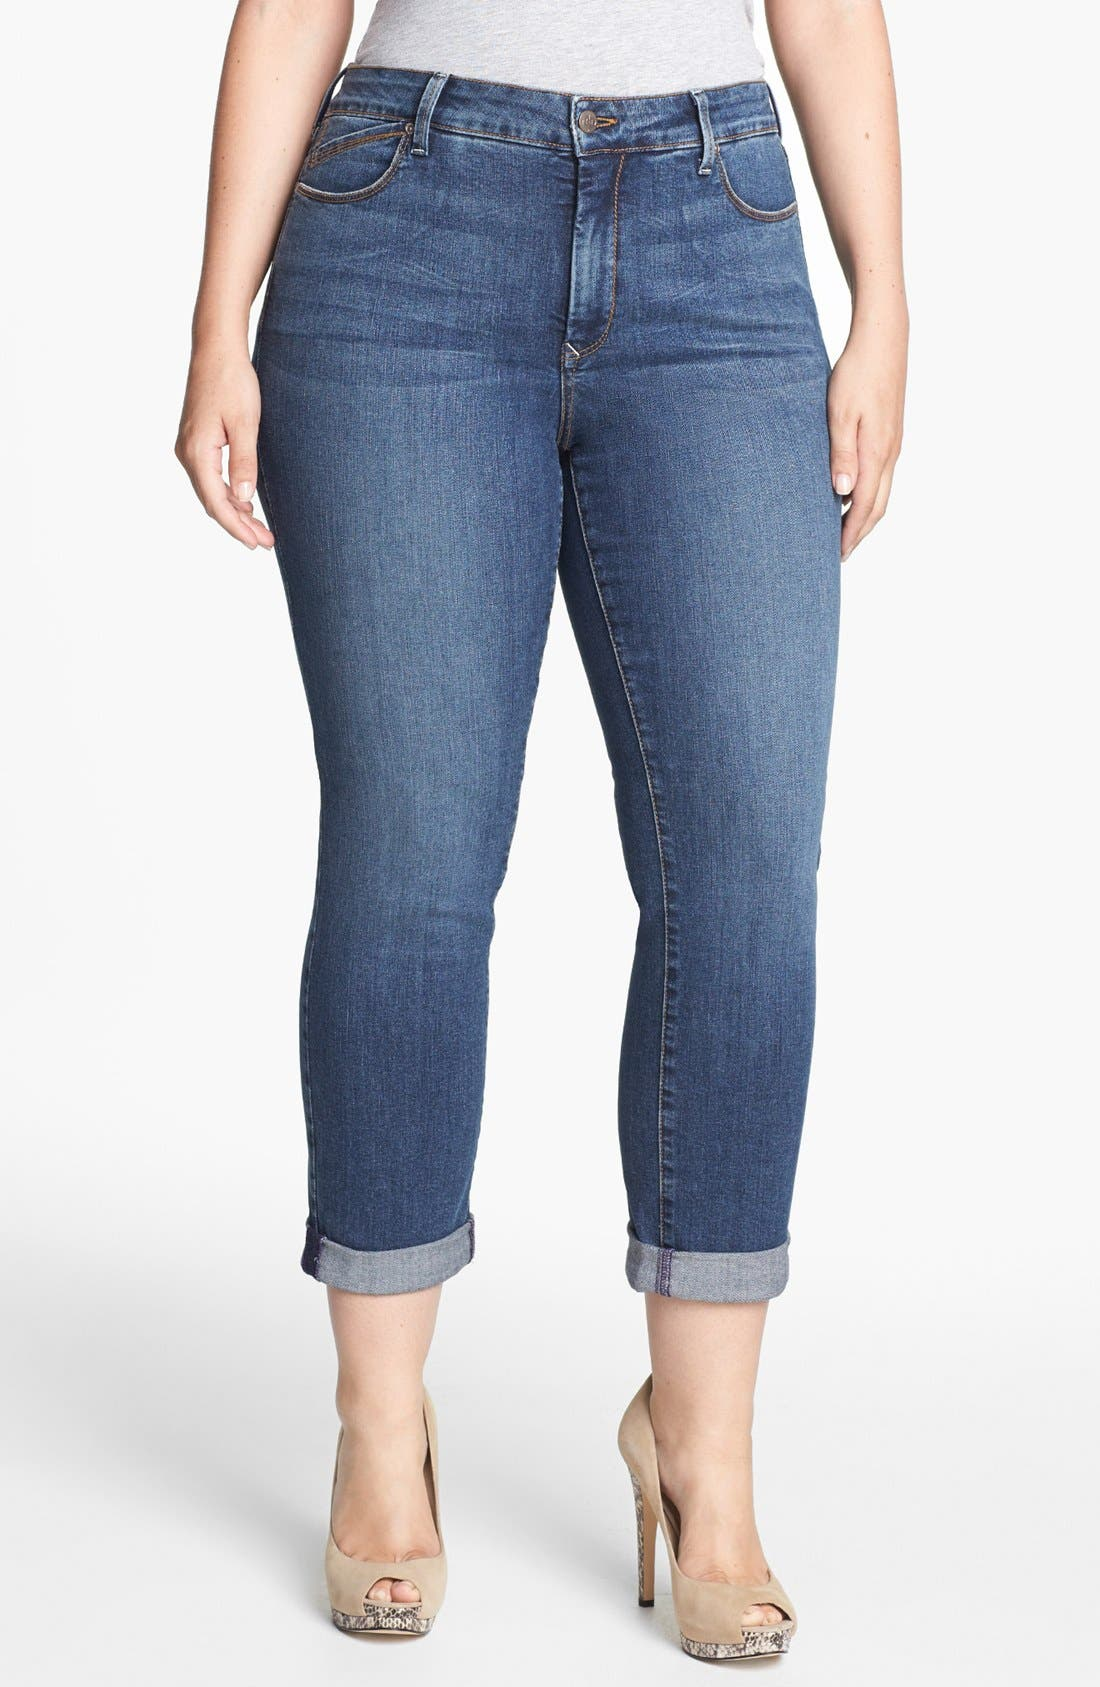 Alternate Image 1 Selected - NYDJ 'Tanya' Stretch Boyfriend Jeans (Lockport) (Plus Size)